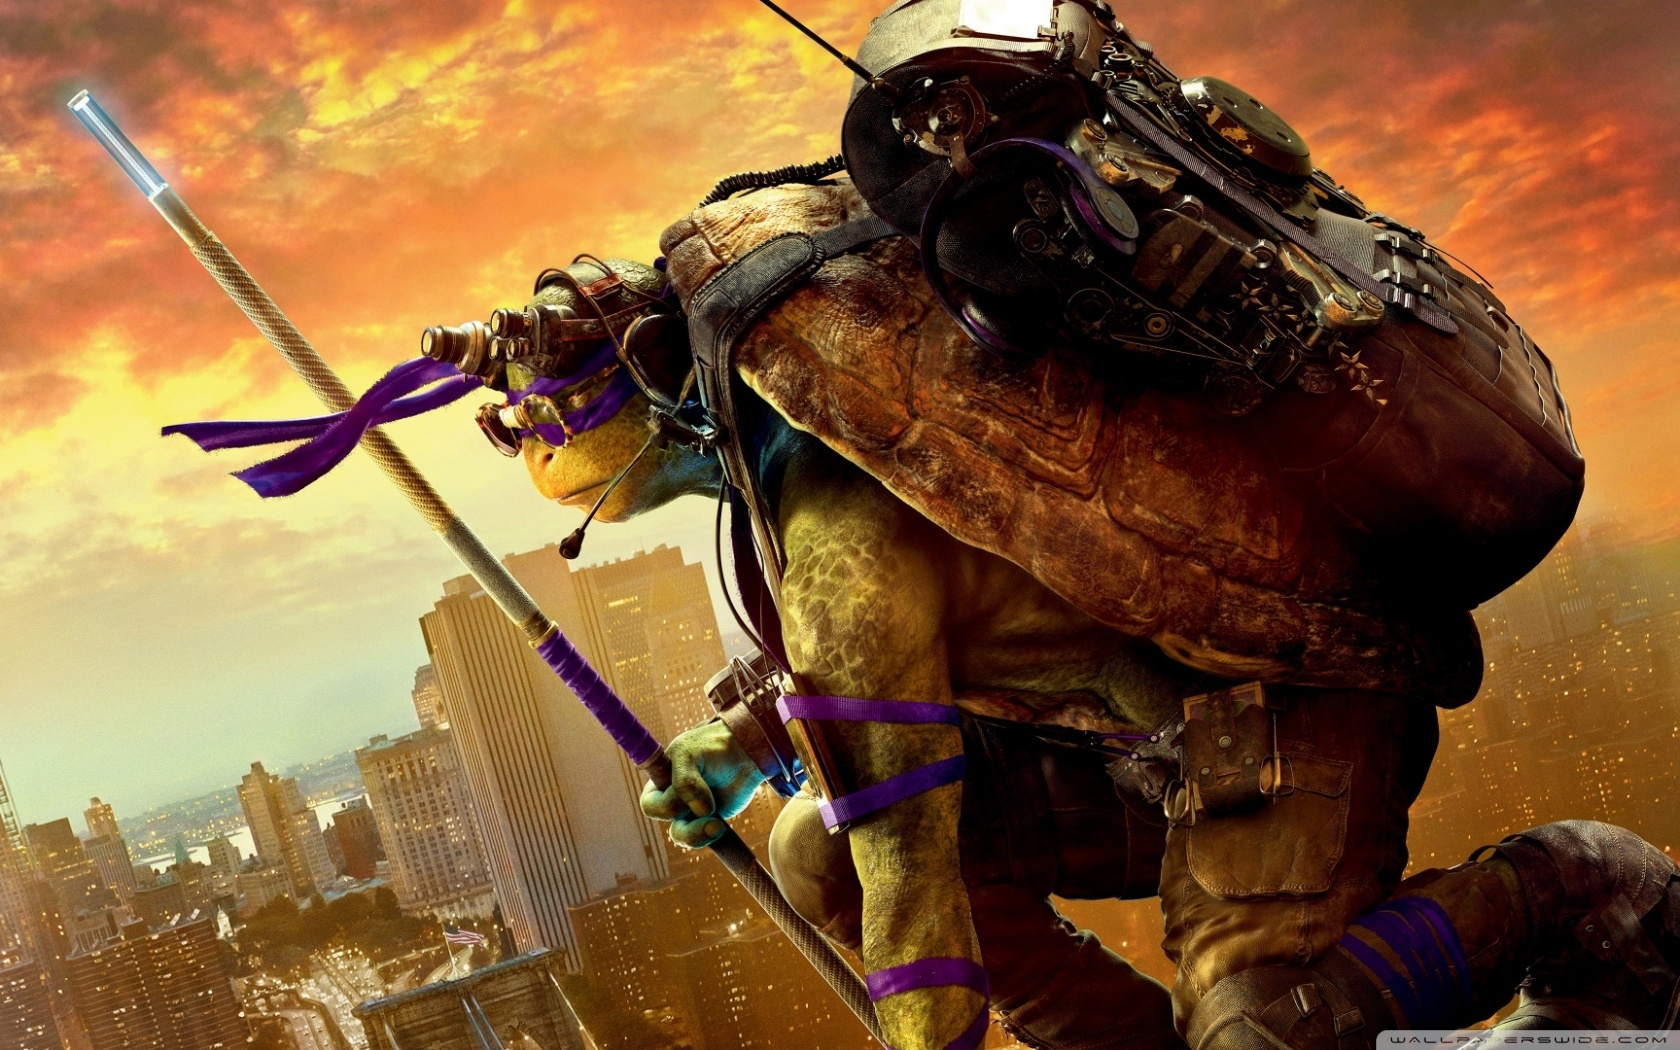 Free Donatello phone wallpaper by rubydee